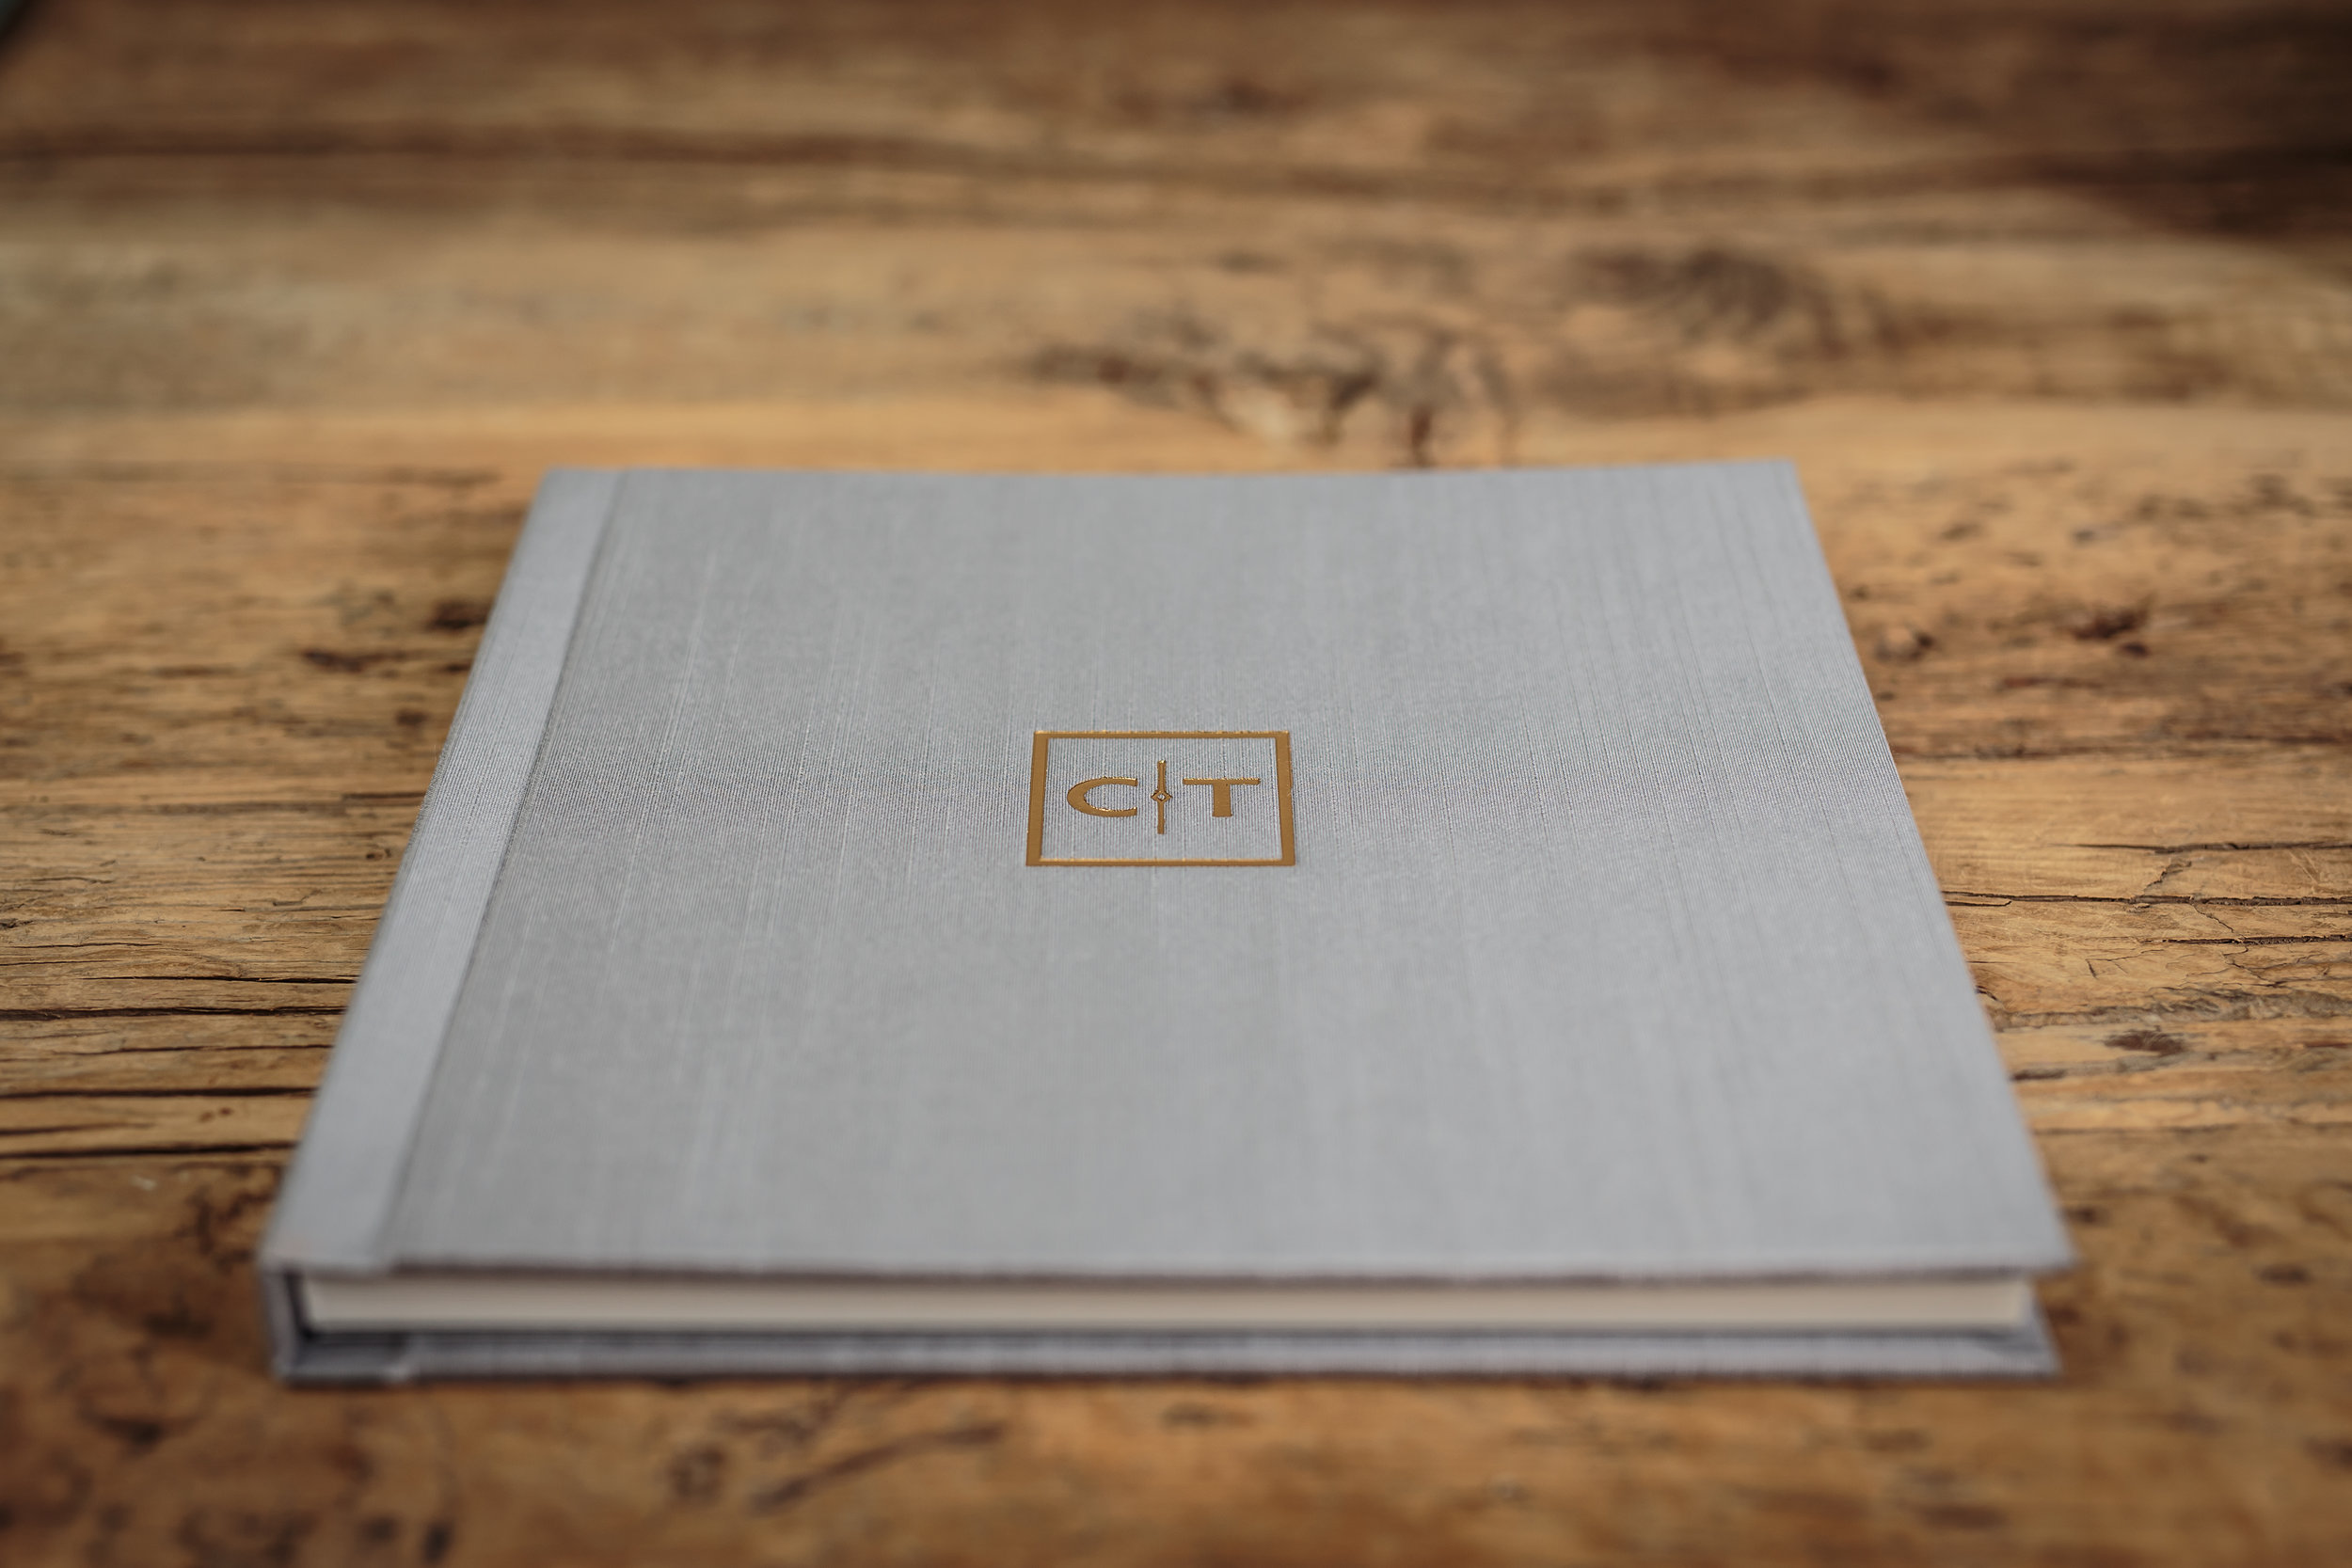 wedding album with a grey cloth cover and imprtinting